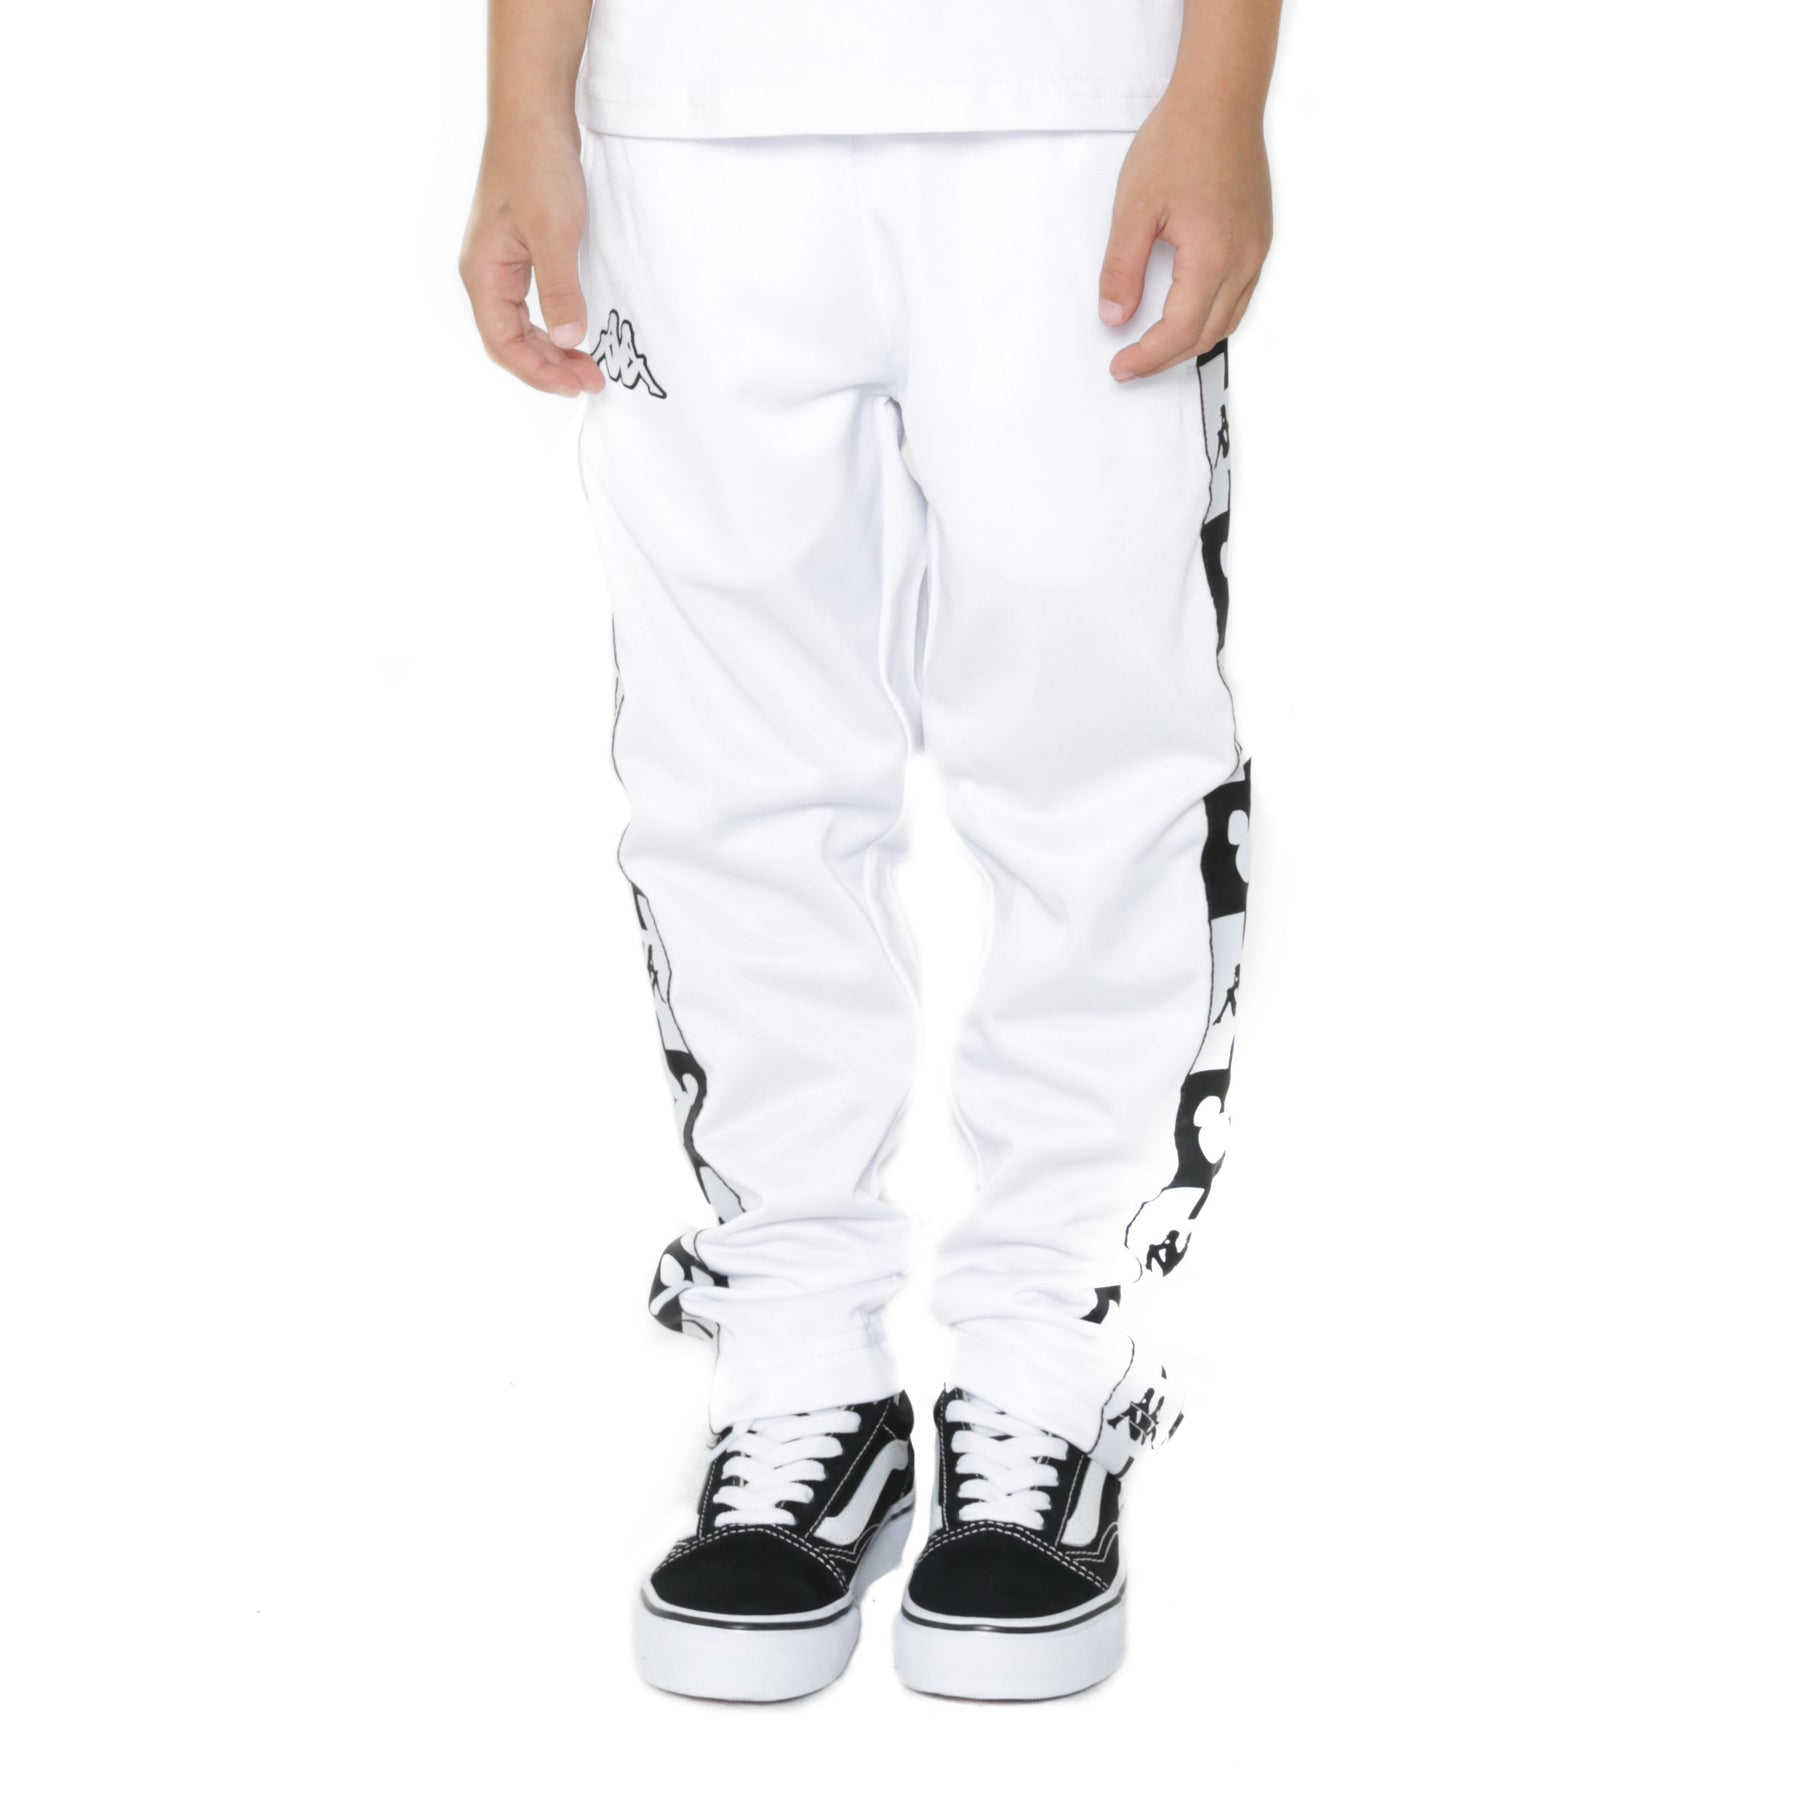 4c74540f86 Kids Authentic Anthony Disney White Track Pants – Kappa USA